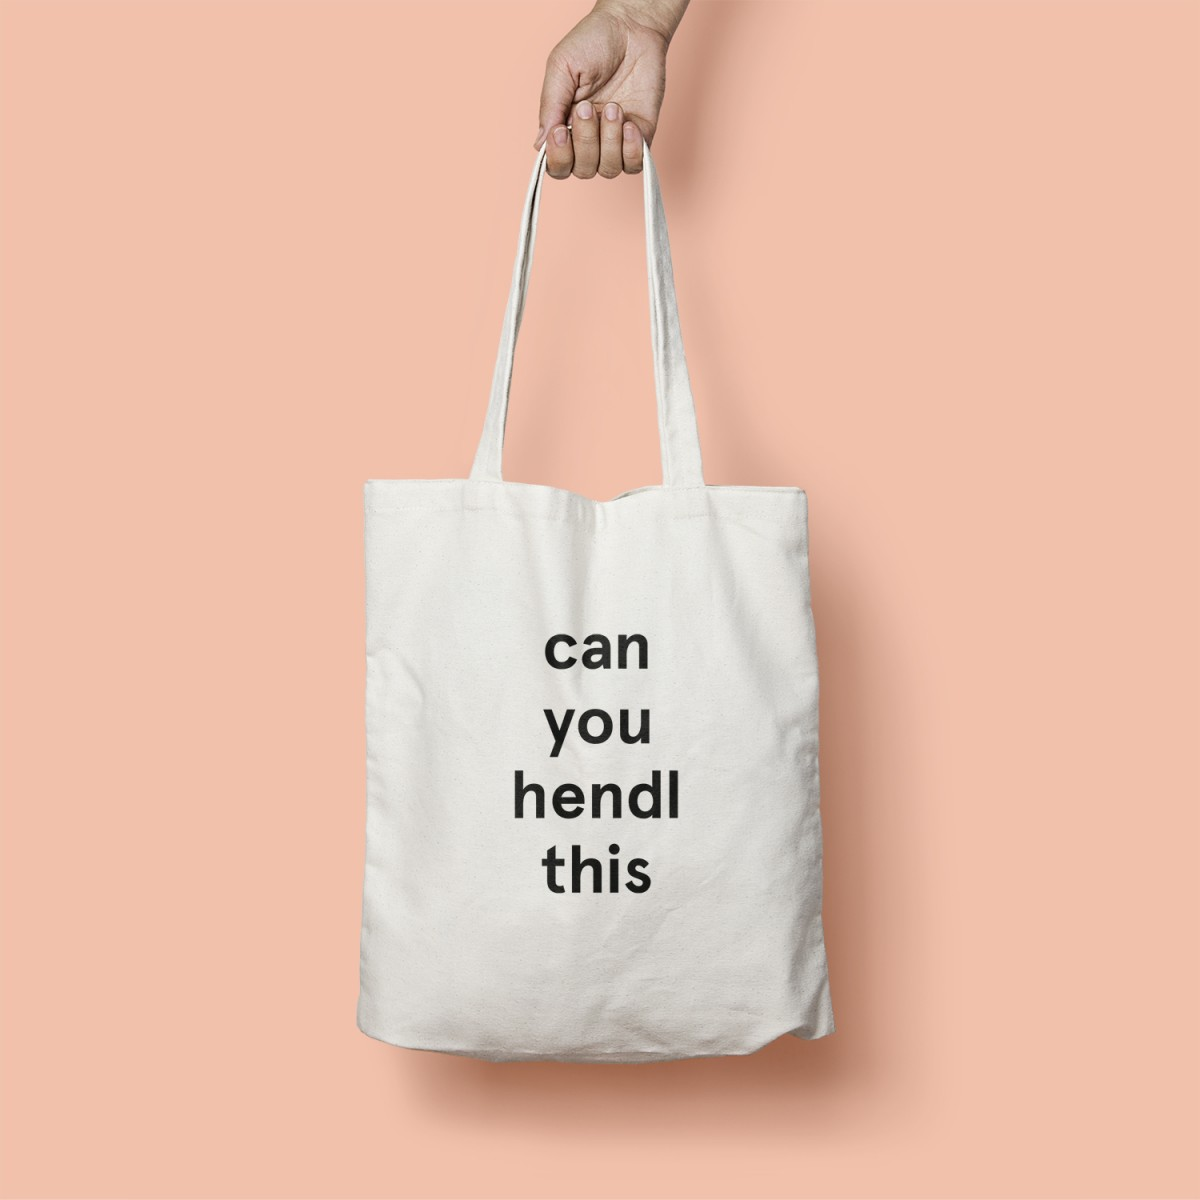 "edition ij Baumwolltasche ""can you hendl this?"""